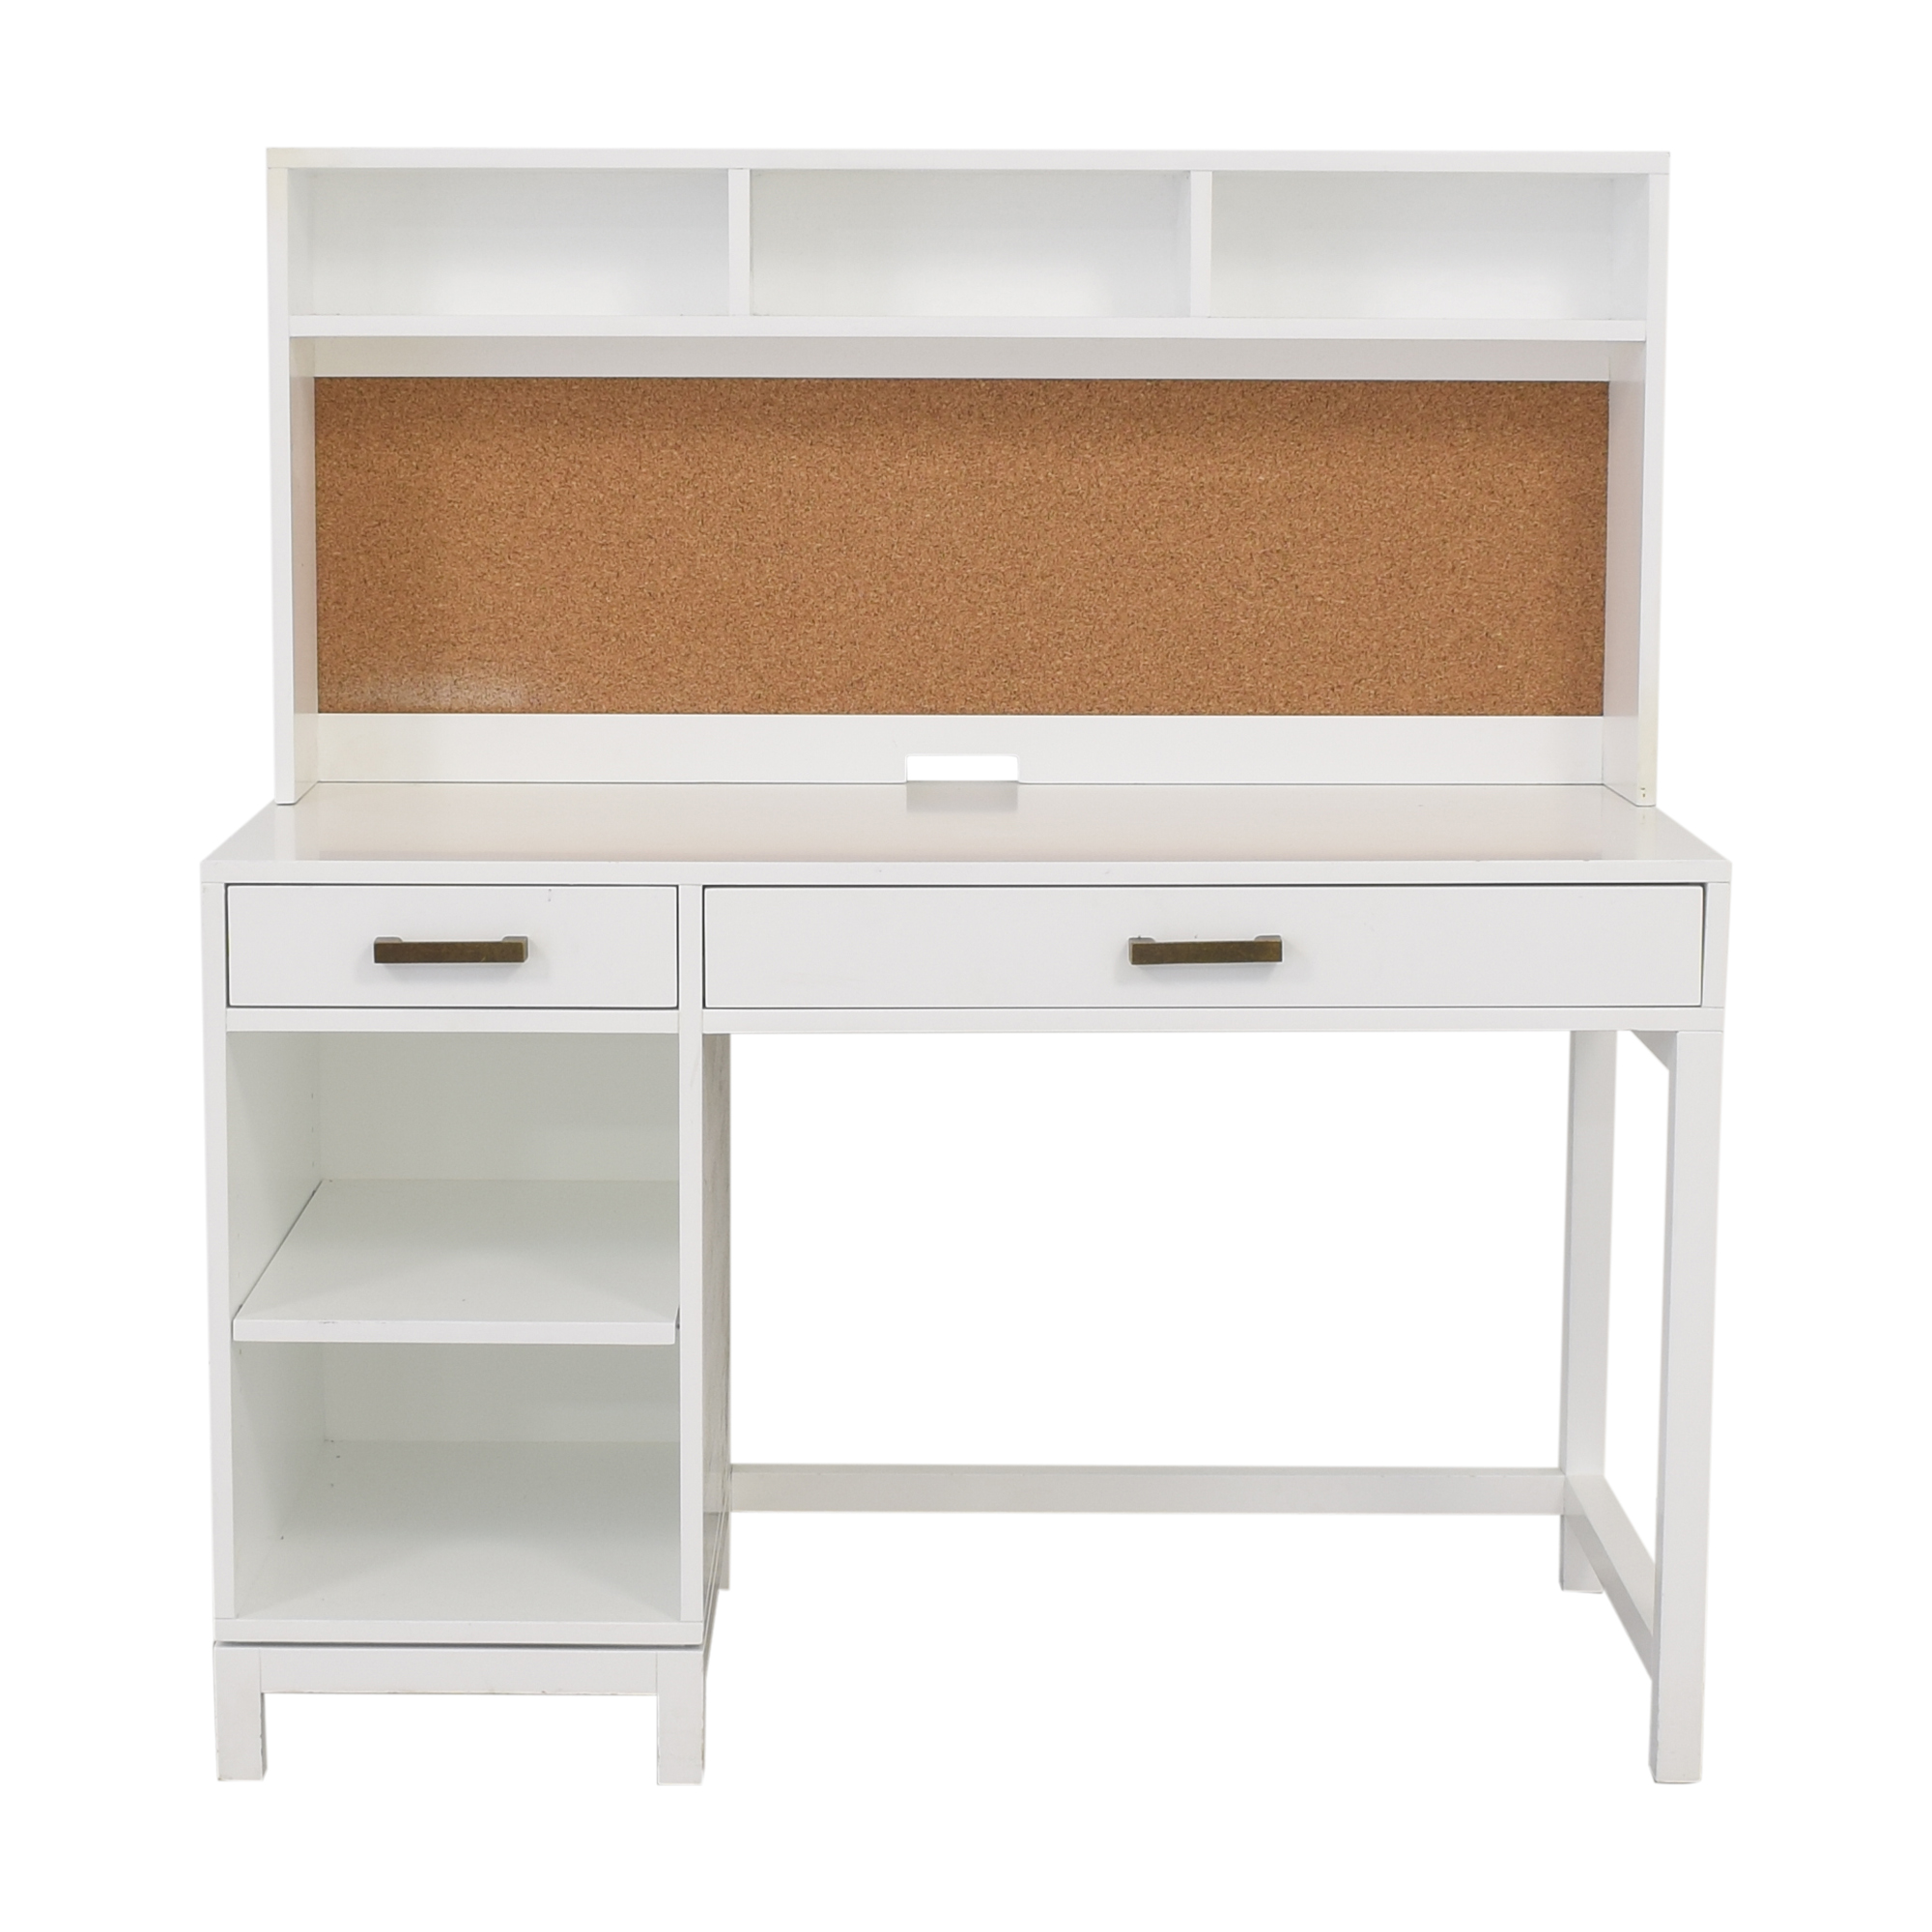 shop Land of Nod for Crate & Kids Parke Desk and Hutch Land of Nod Tables